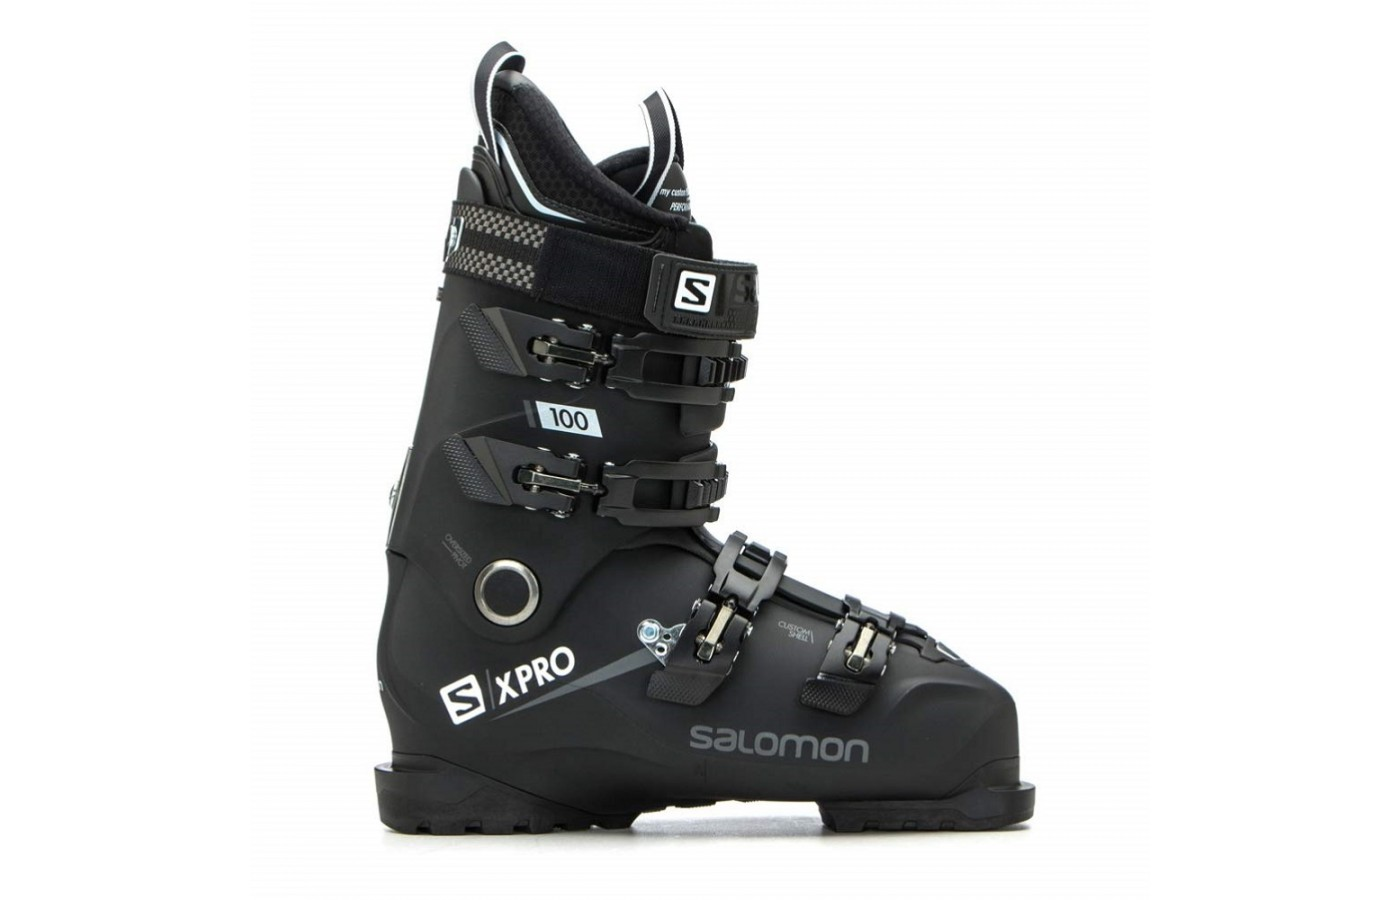 The Salomon X Pro 100 offers a custom-moldable shell for a better fit.